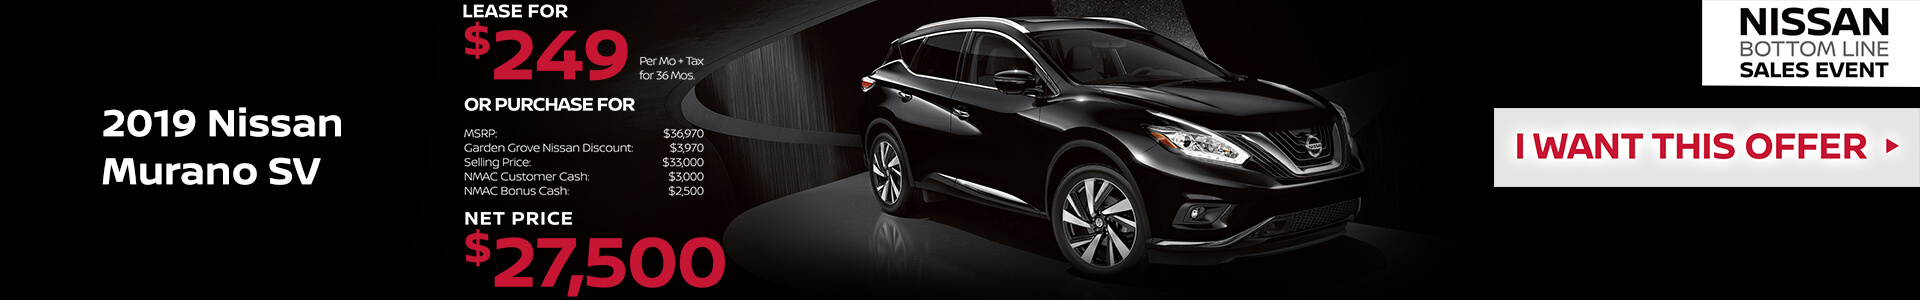 2019 Nissan Murano Lease for $249